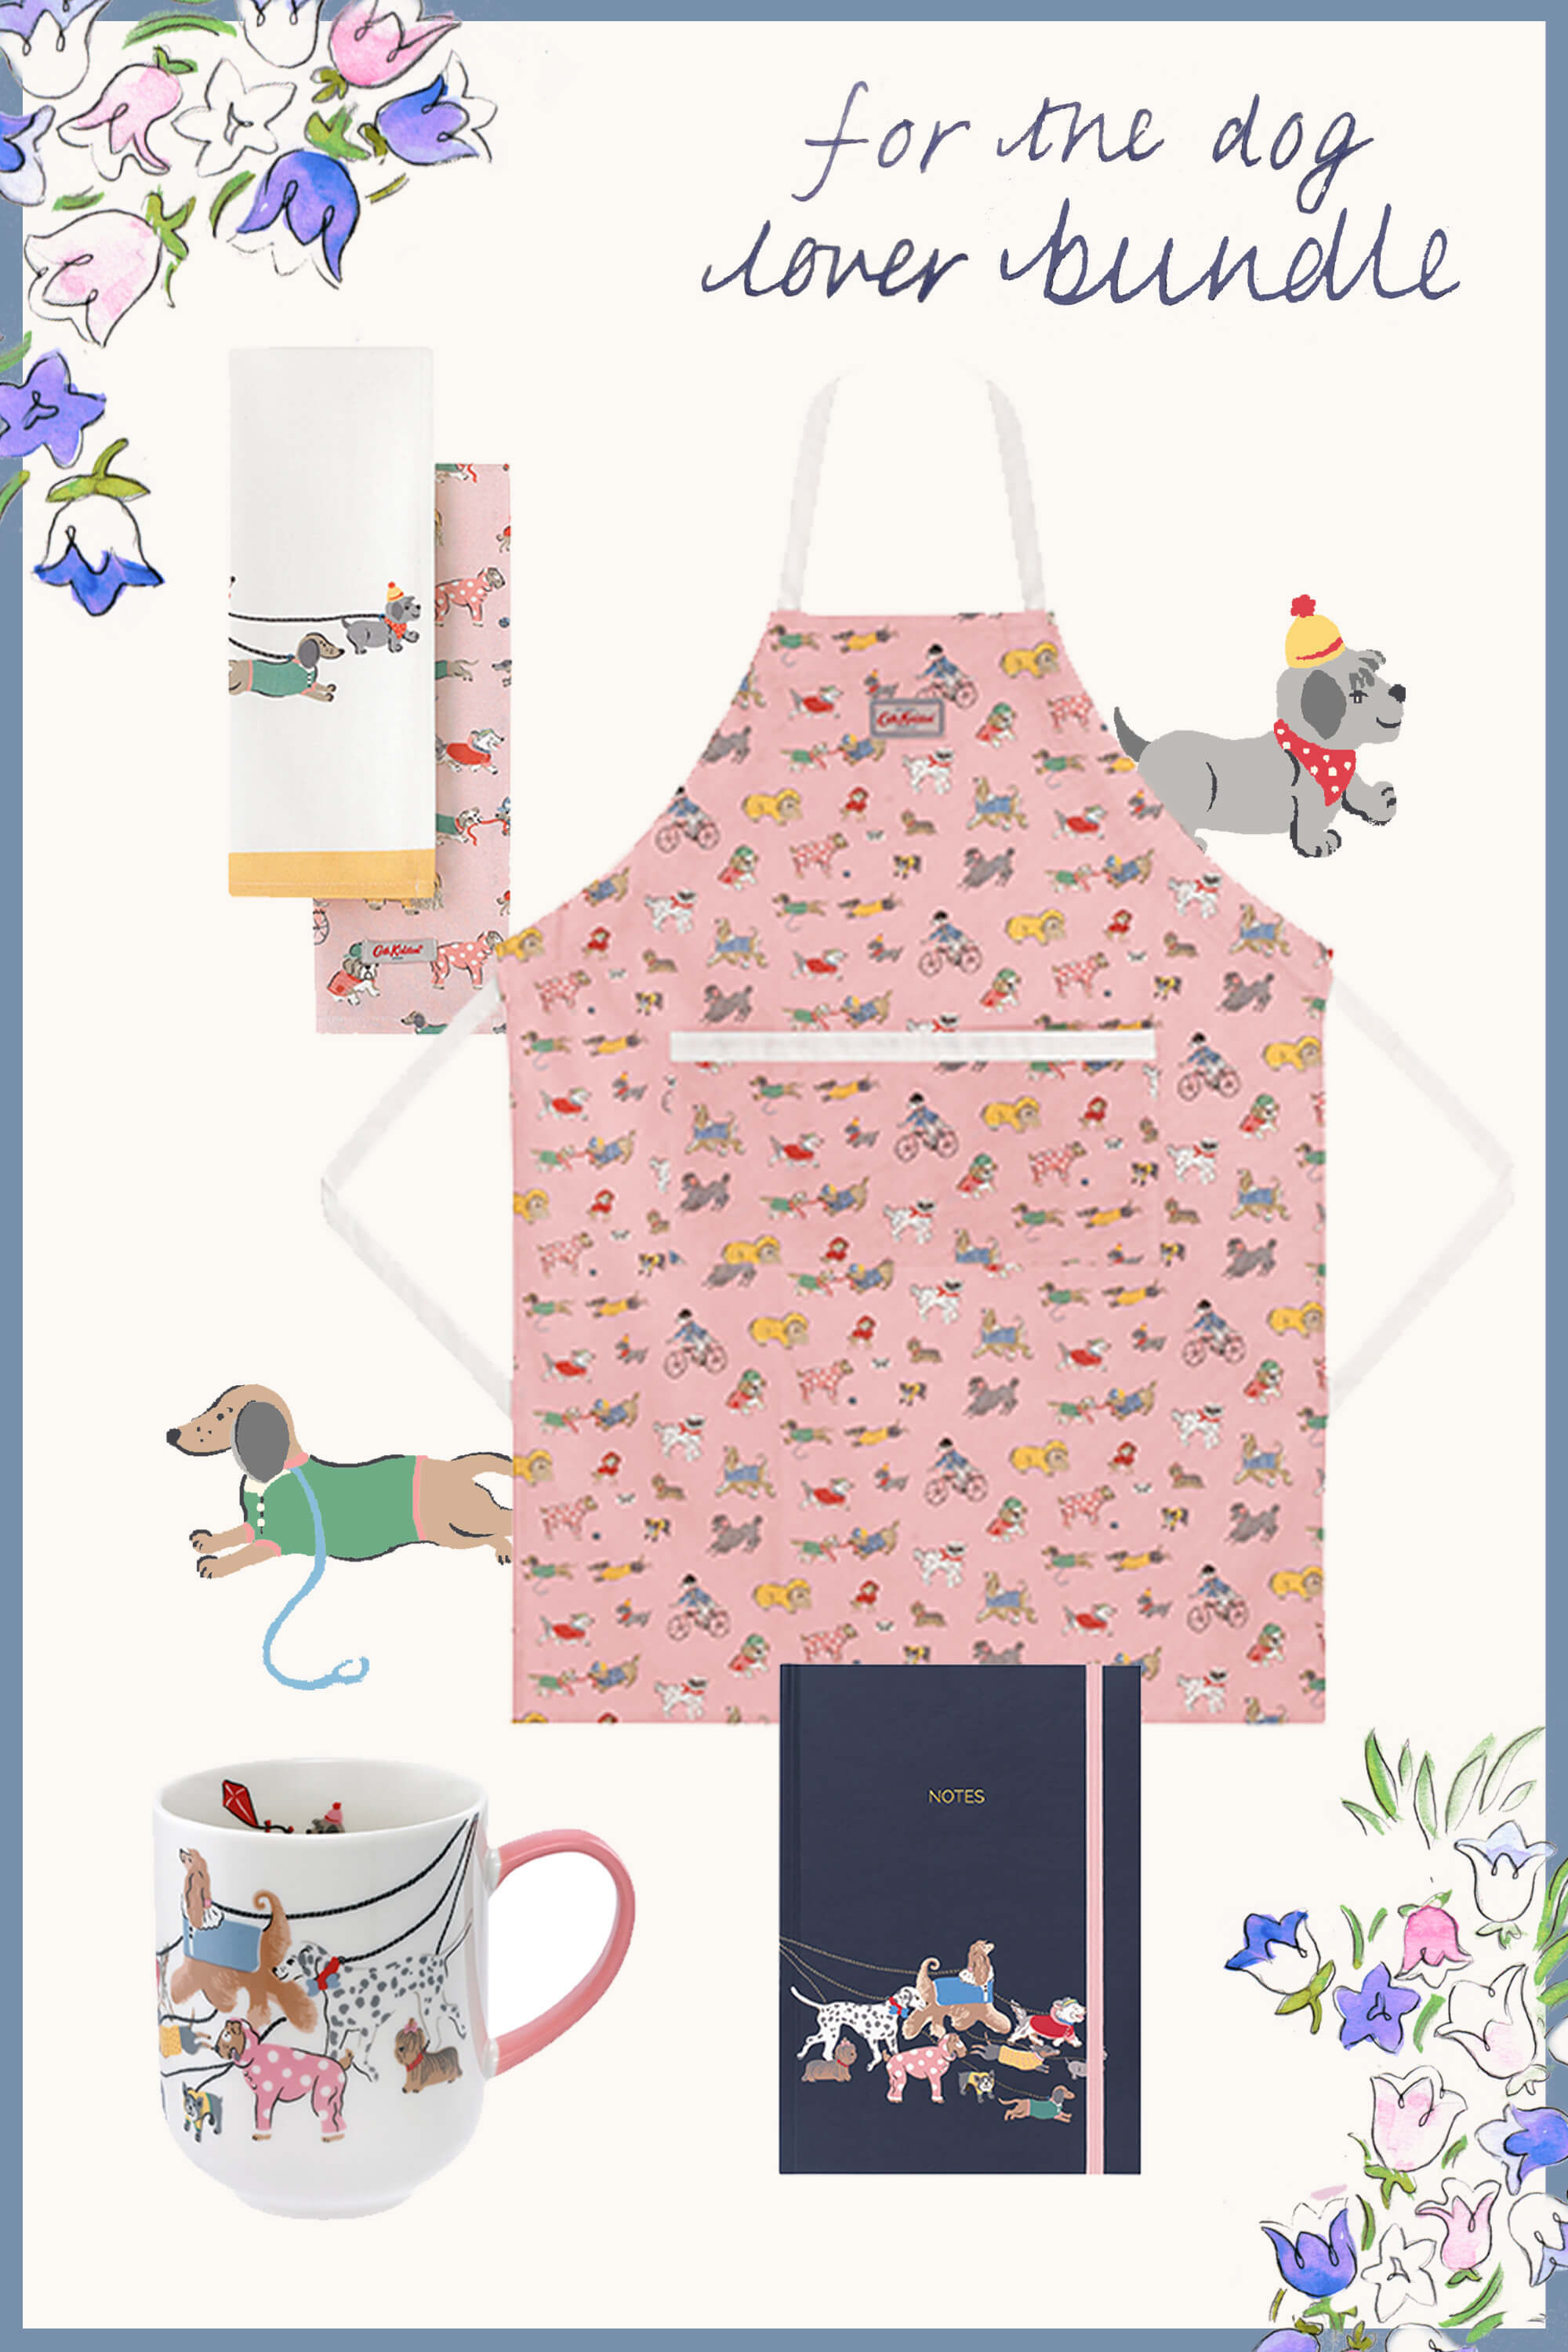 Cath Kidston The Dog Lover Bundle in Soft Pink